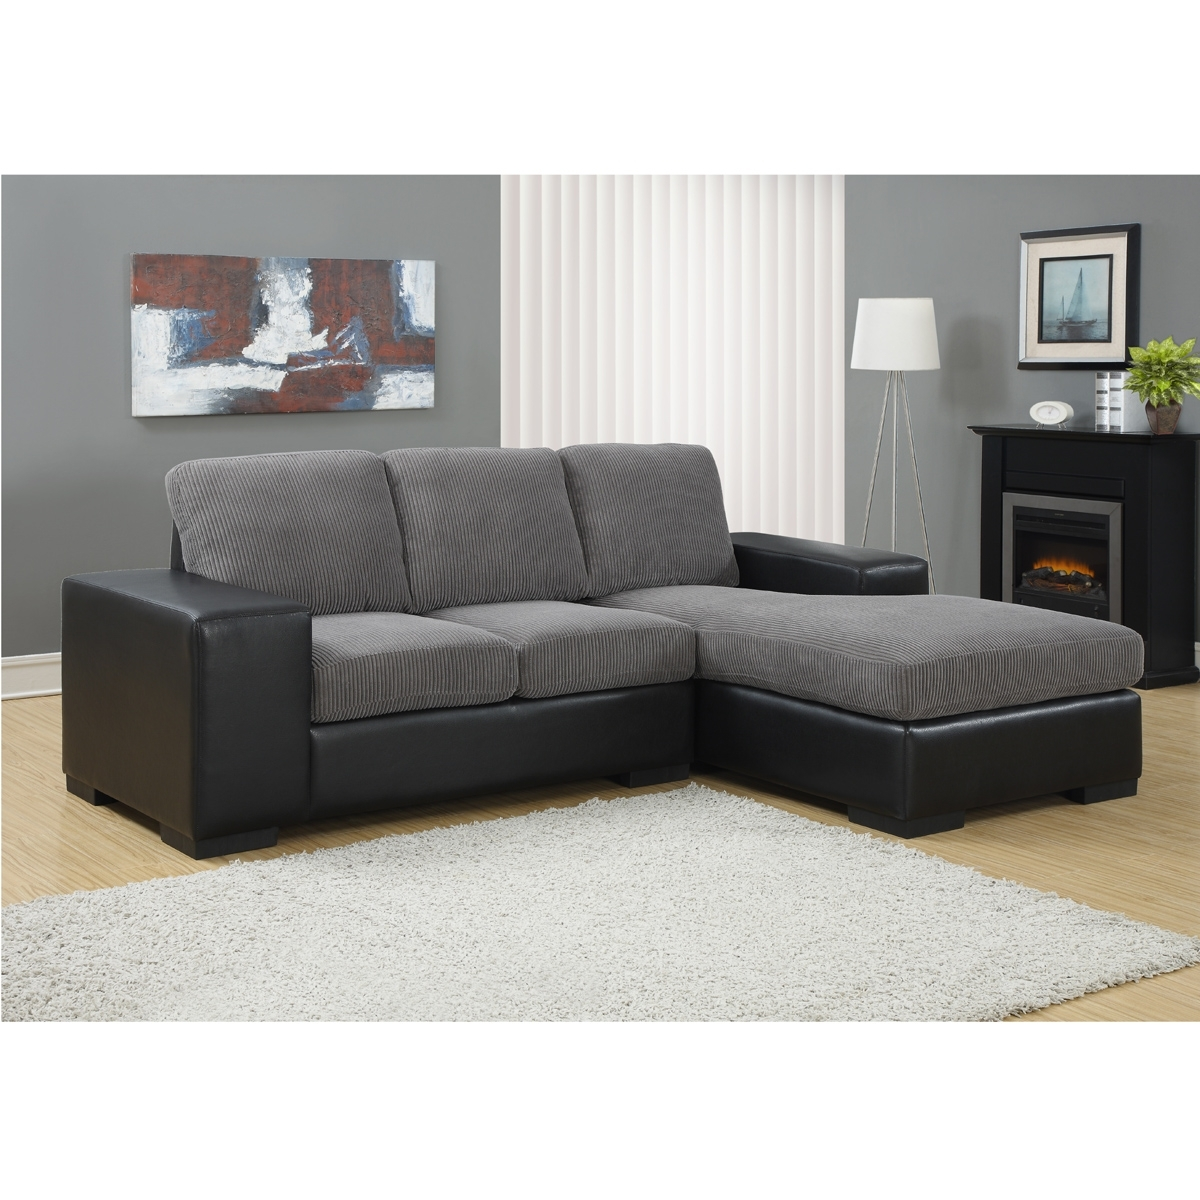 Jacob Corduroy Sofa In Grey & Black | Modern Sectional Sofas intended for Sectional Sofas For Condos